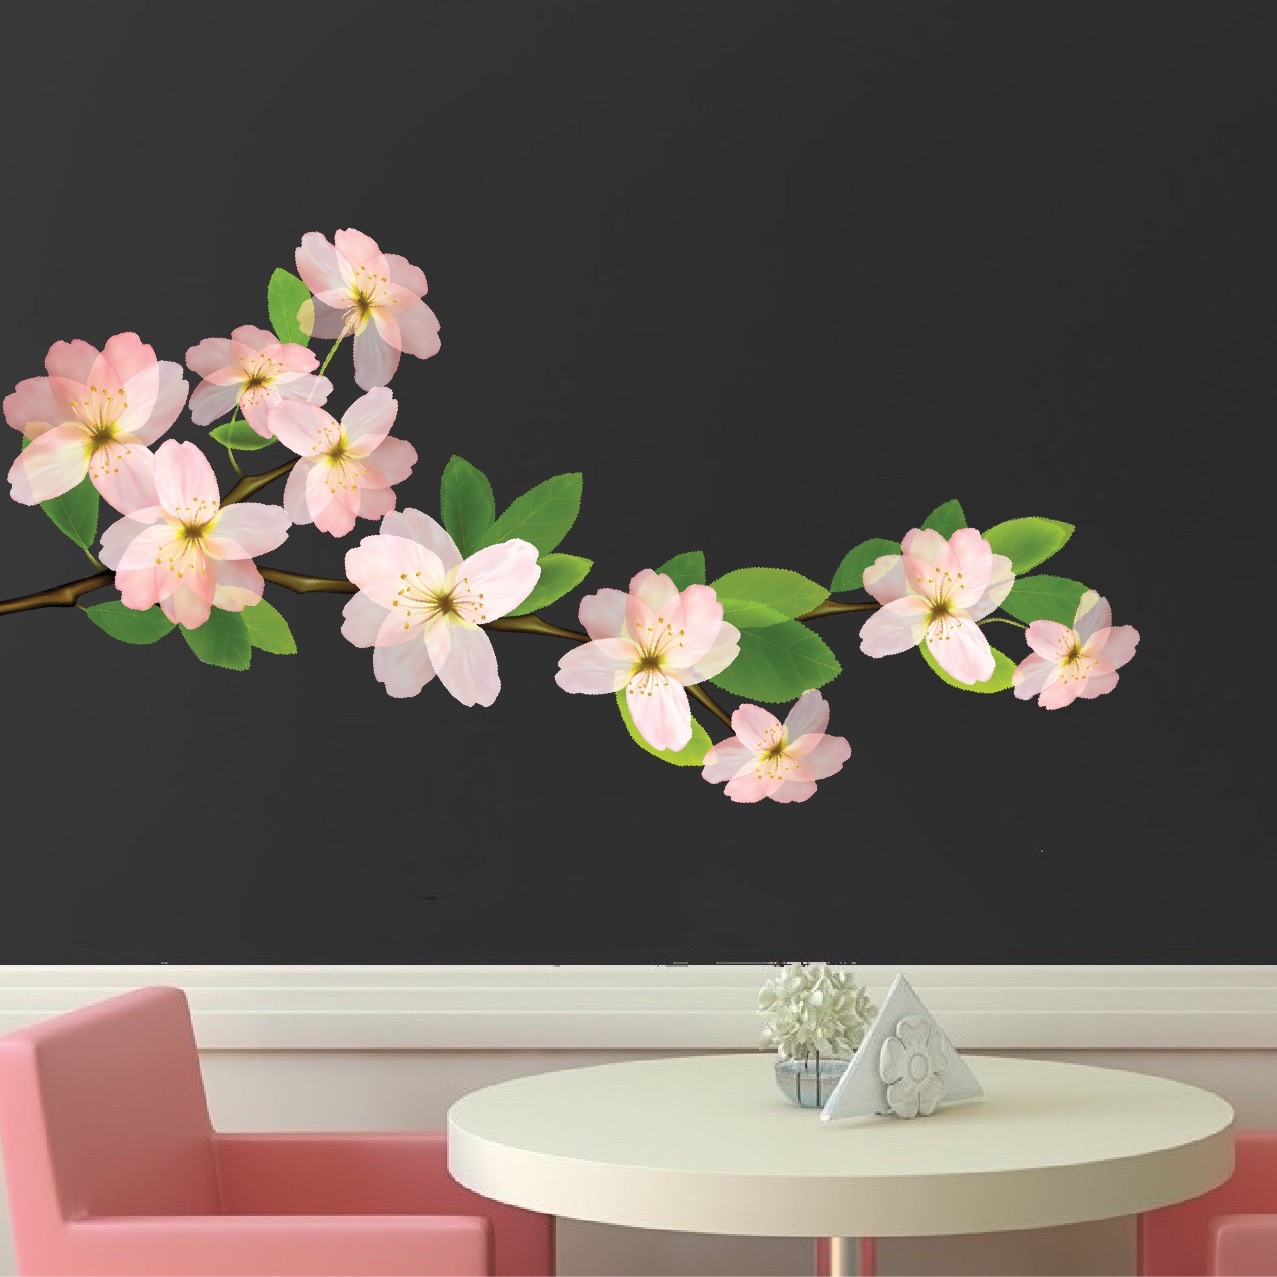 Noble Quick View Flower Branch Wall Decal Bedroom Cherry Blossom Wall Floral Wall Decals Appliques Flower Wall Decals Uk houzz-03 Flower Wall Decals